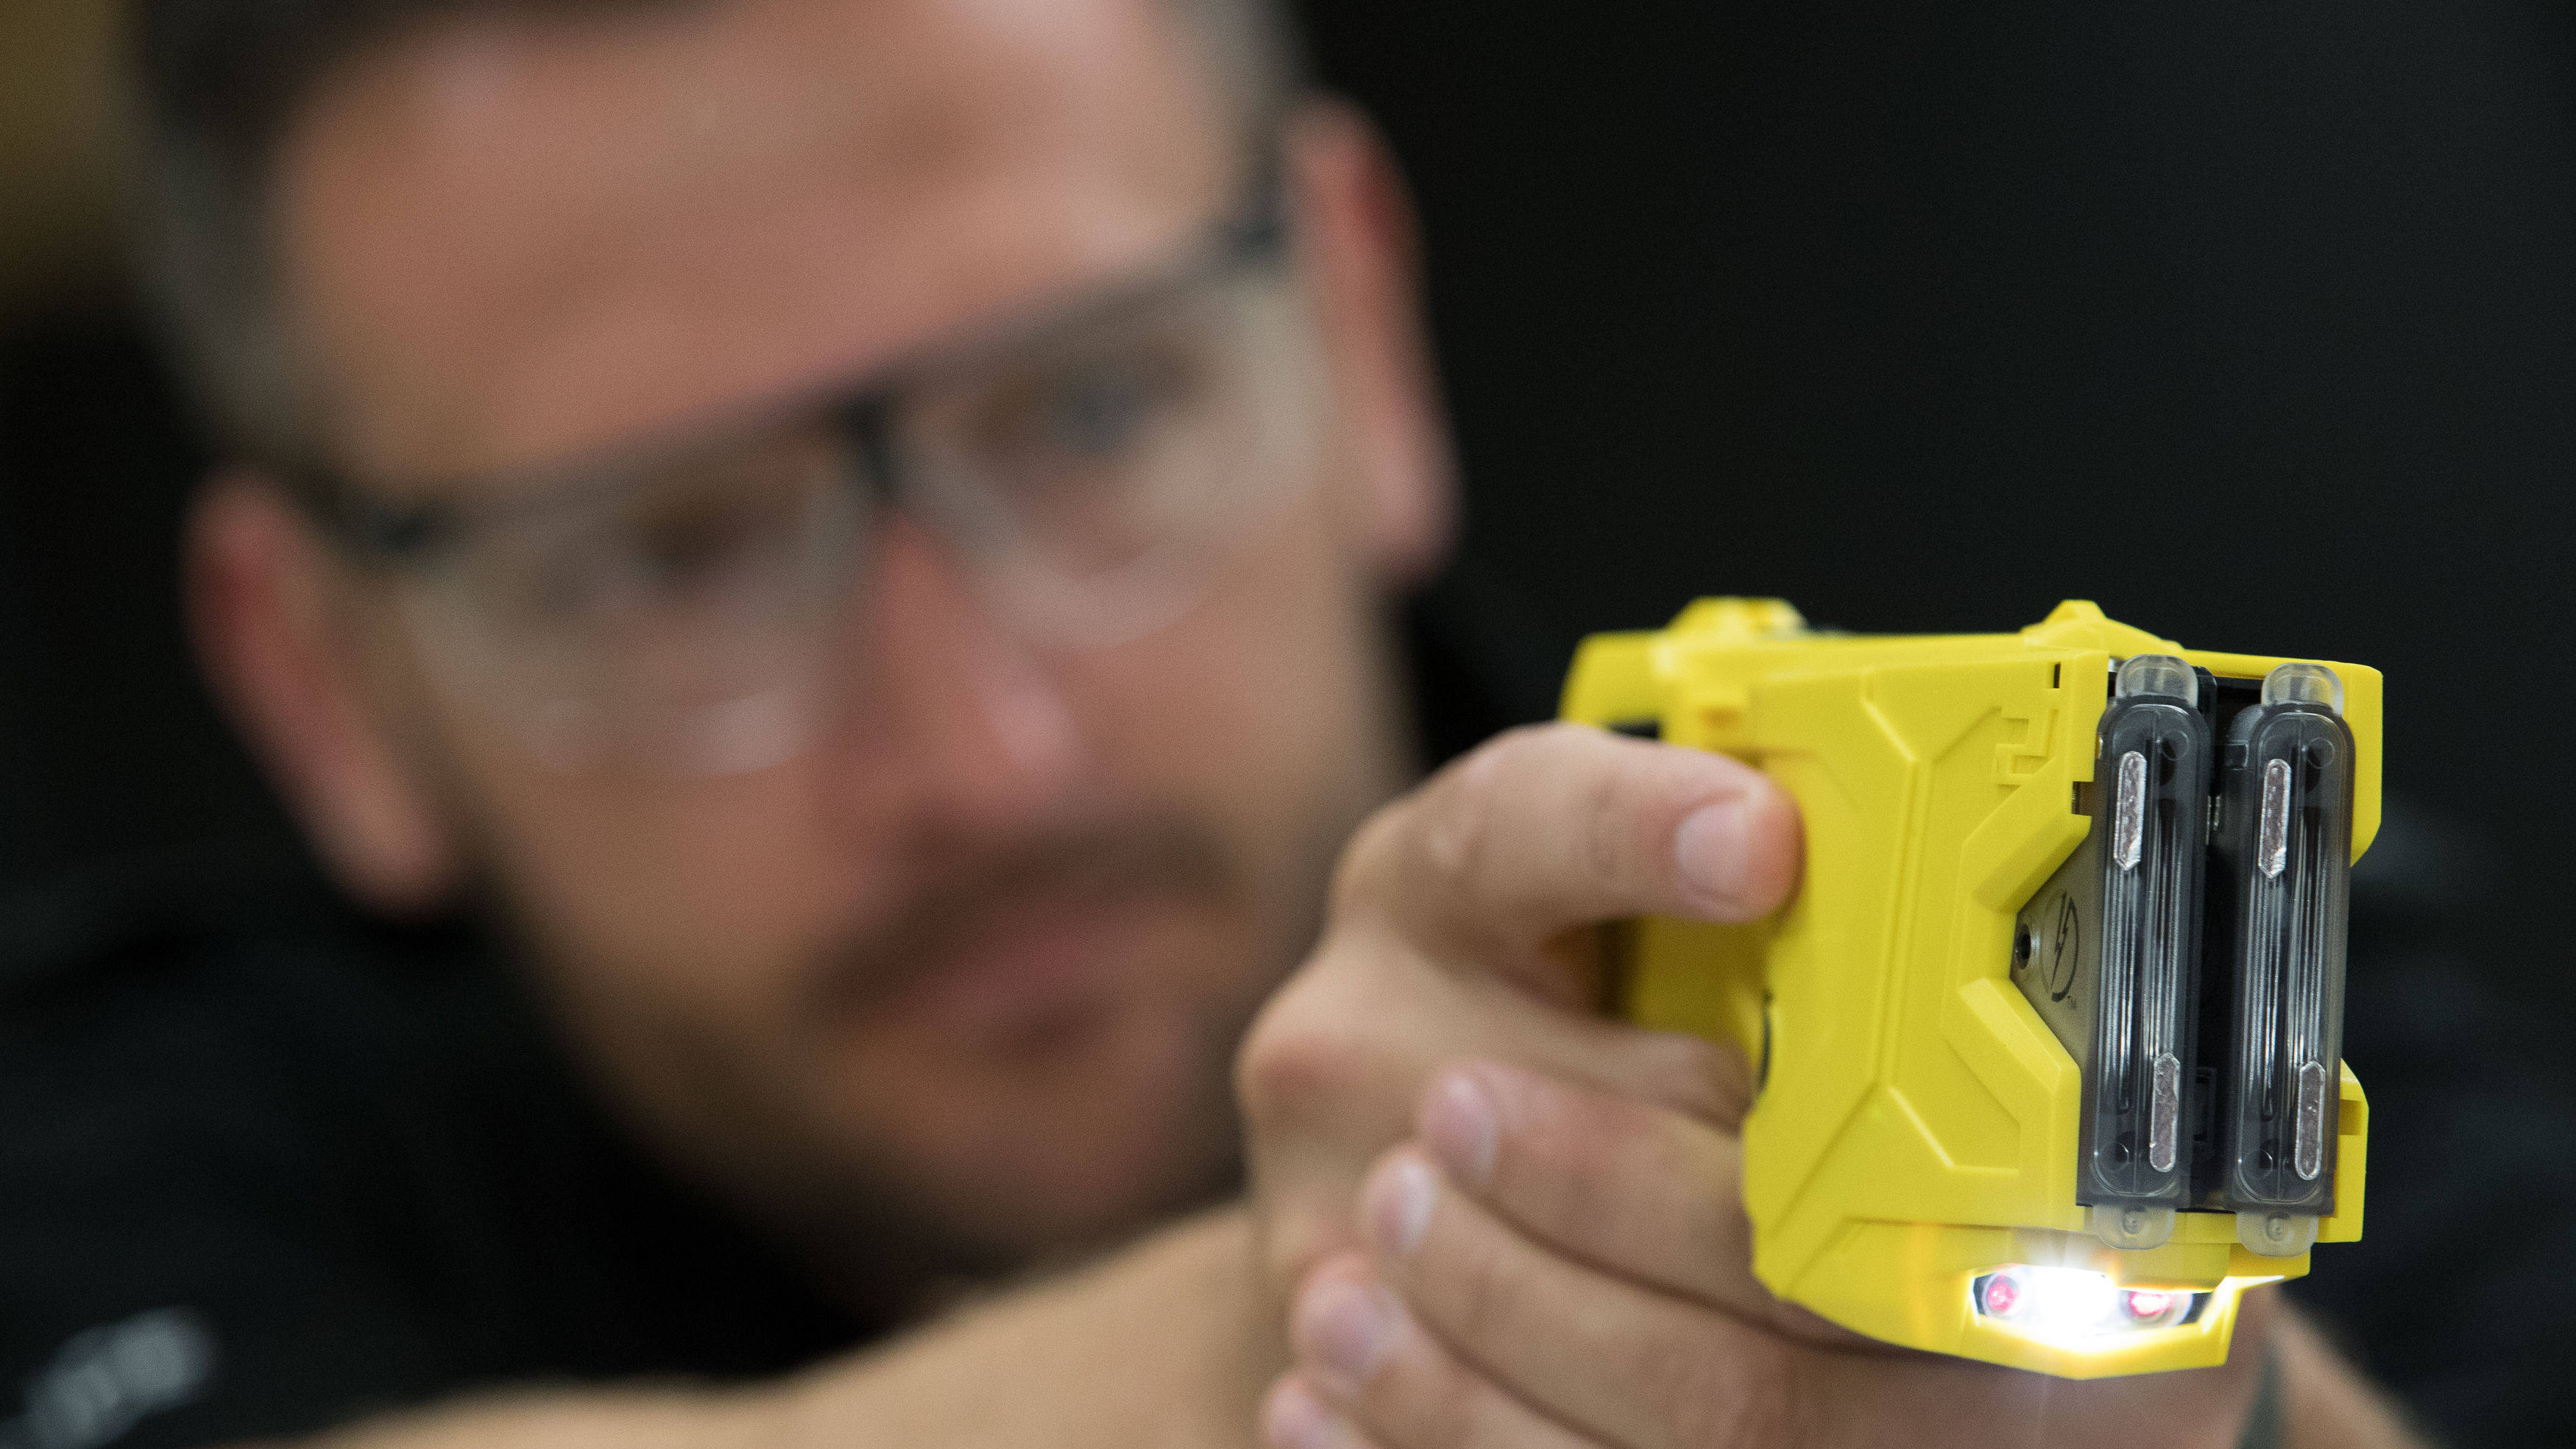 Police Federation Chair Says Officers Could 'Absolutely' Be Killed and Injured Without Tasers